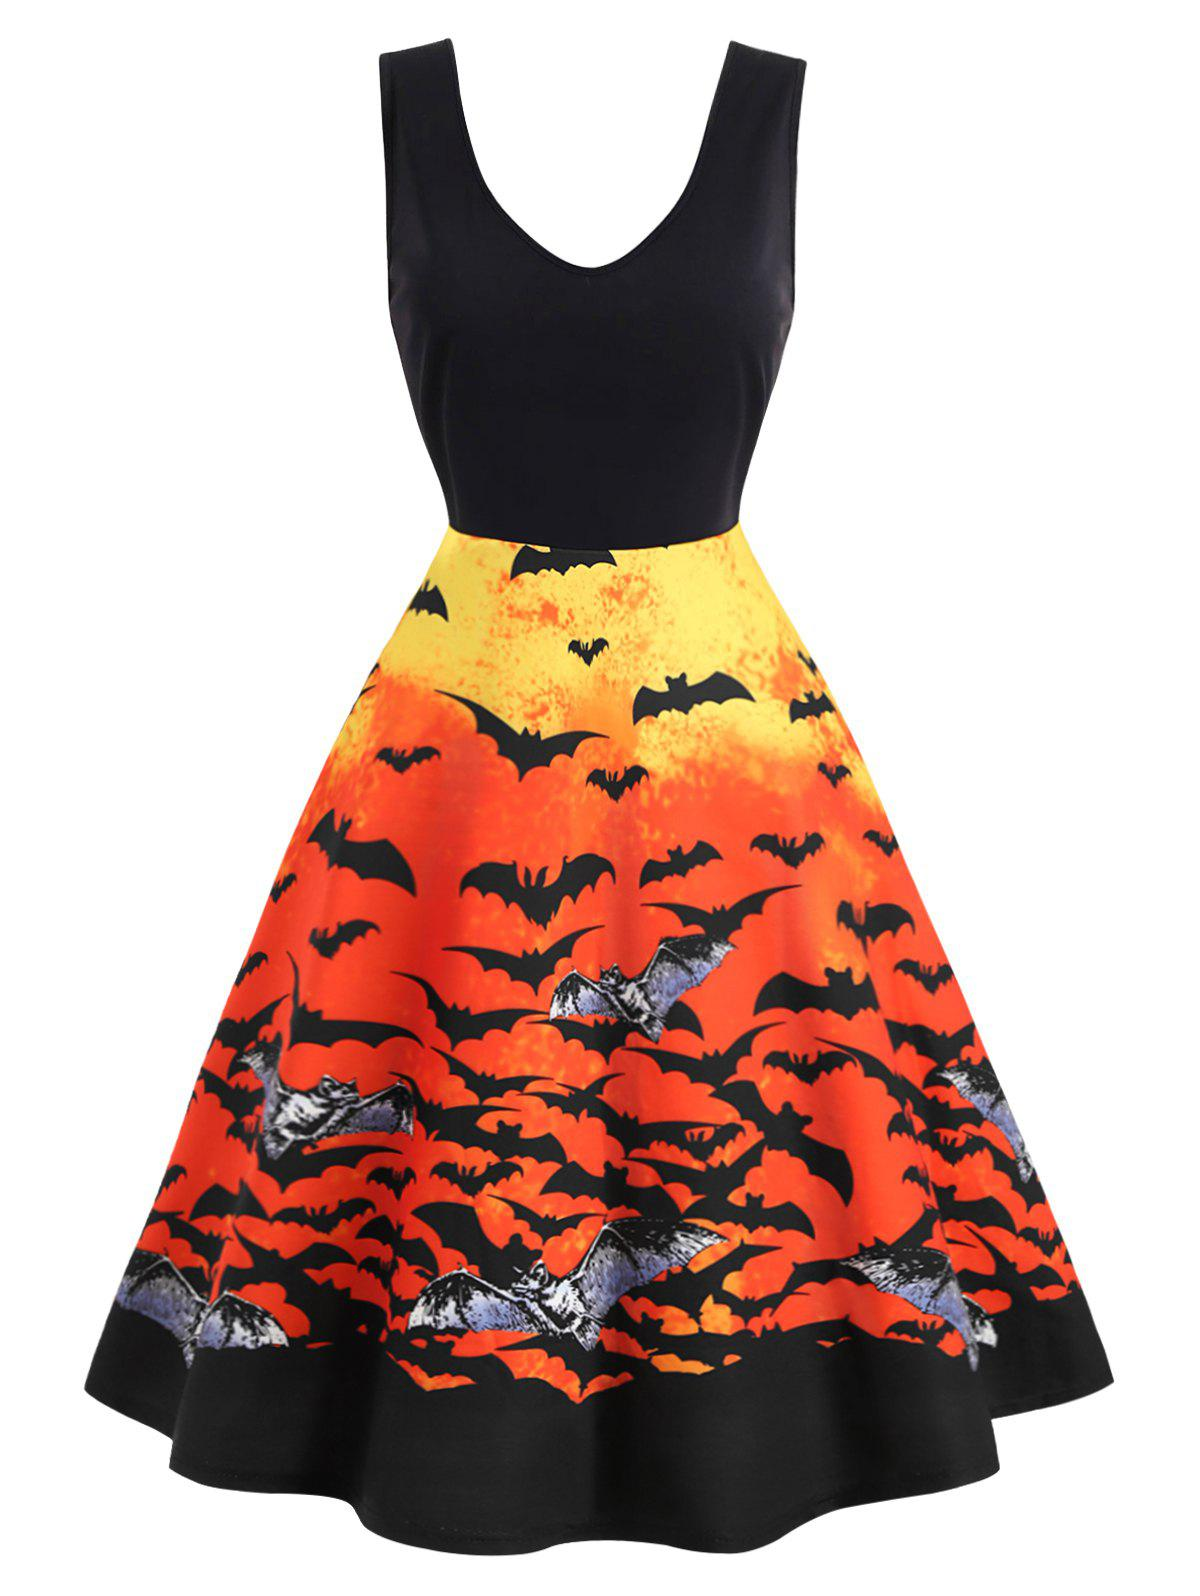 Plus Size Retro Bat Print Gothic Halloween Pin Up Dress